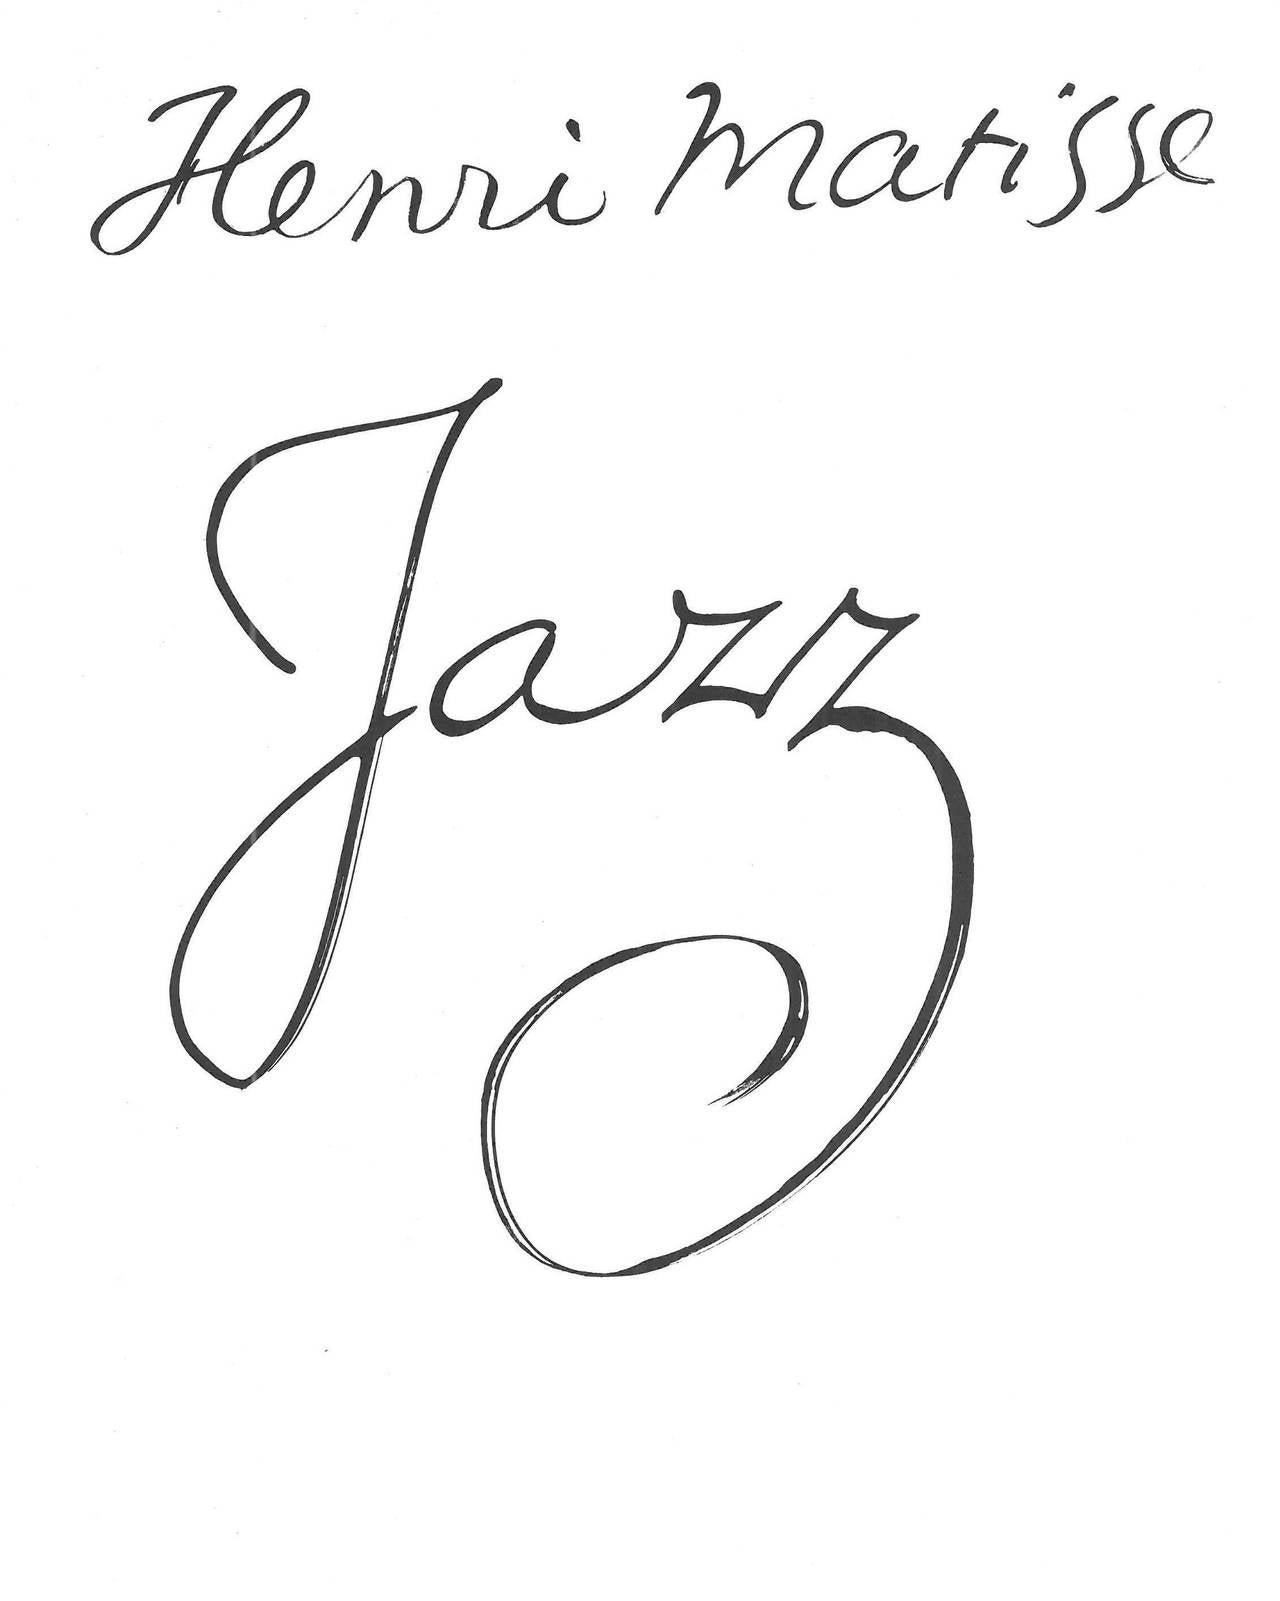 henri matisse jazz book at stdibs henri matisse jazz book 3